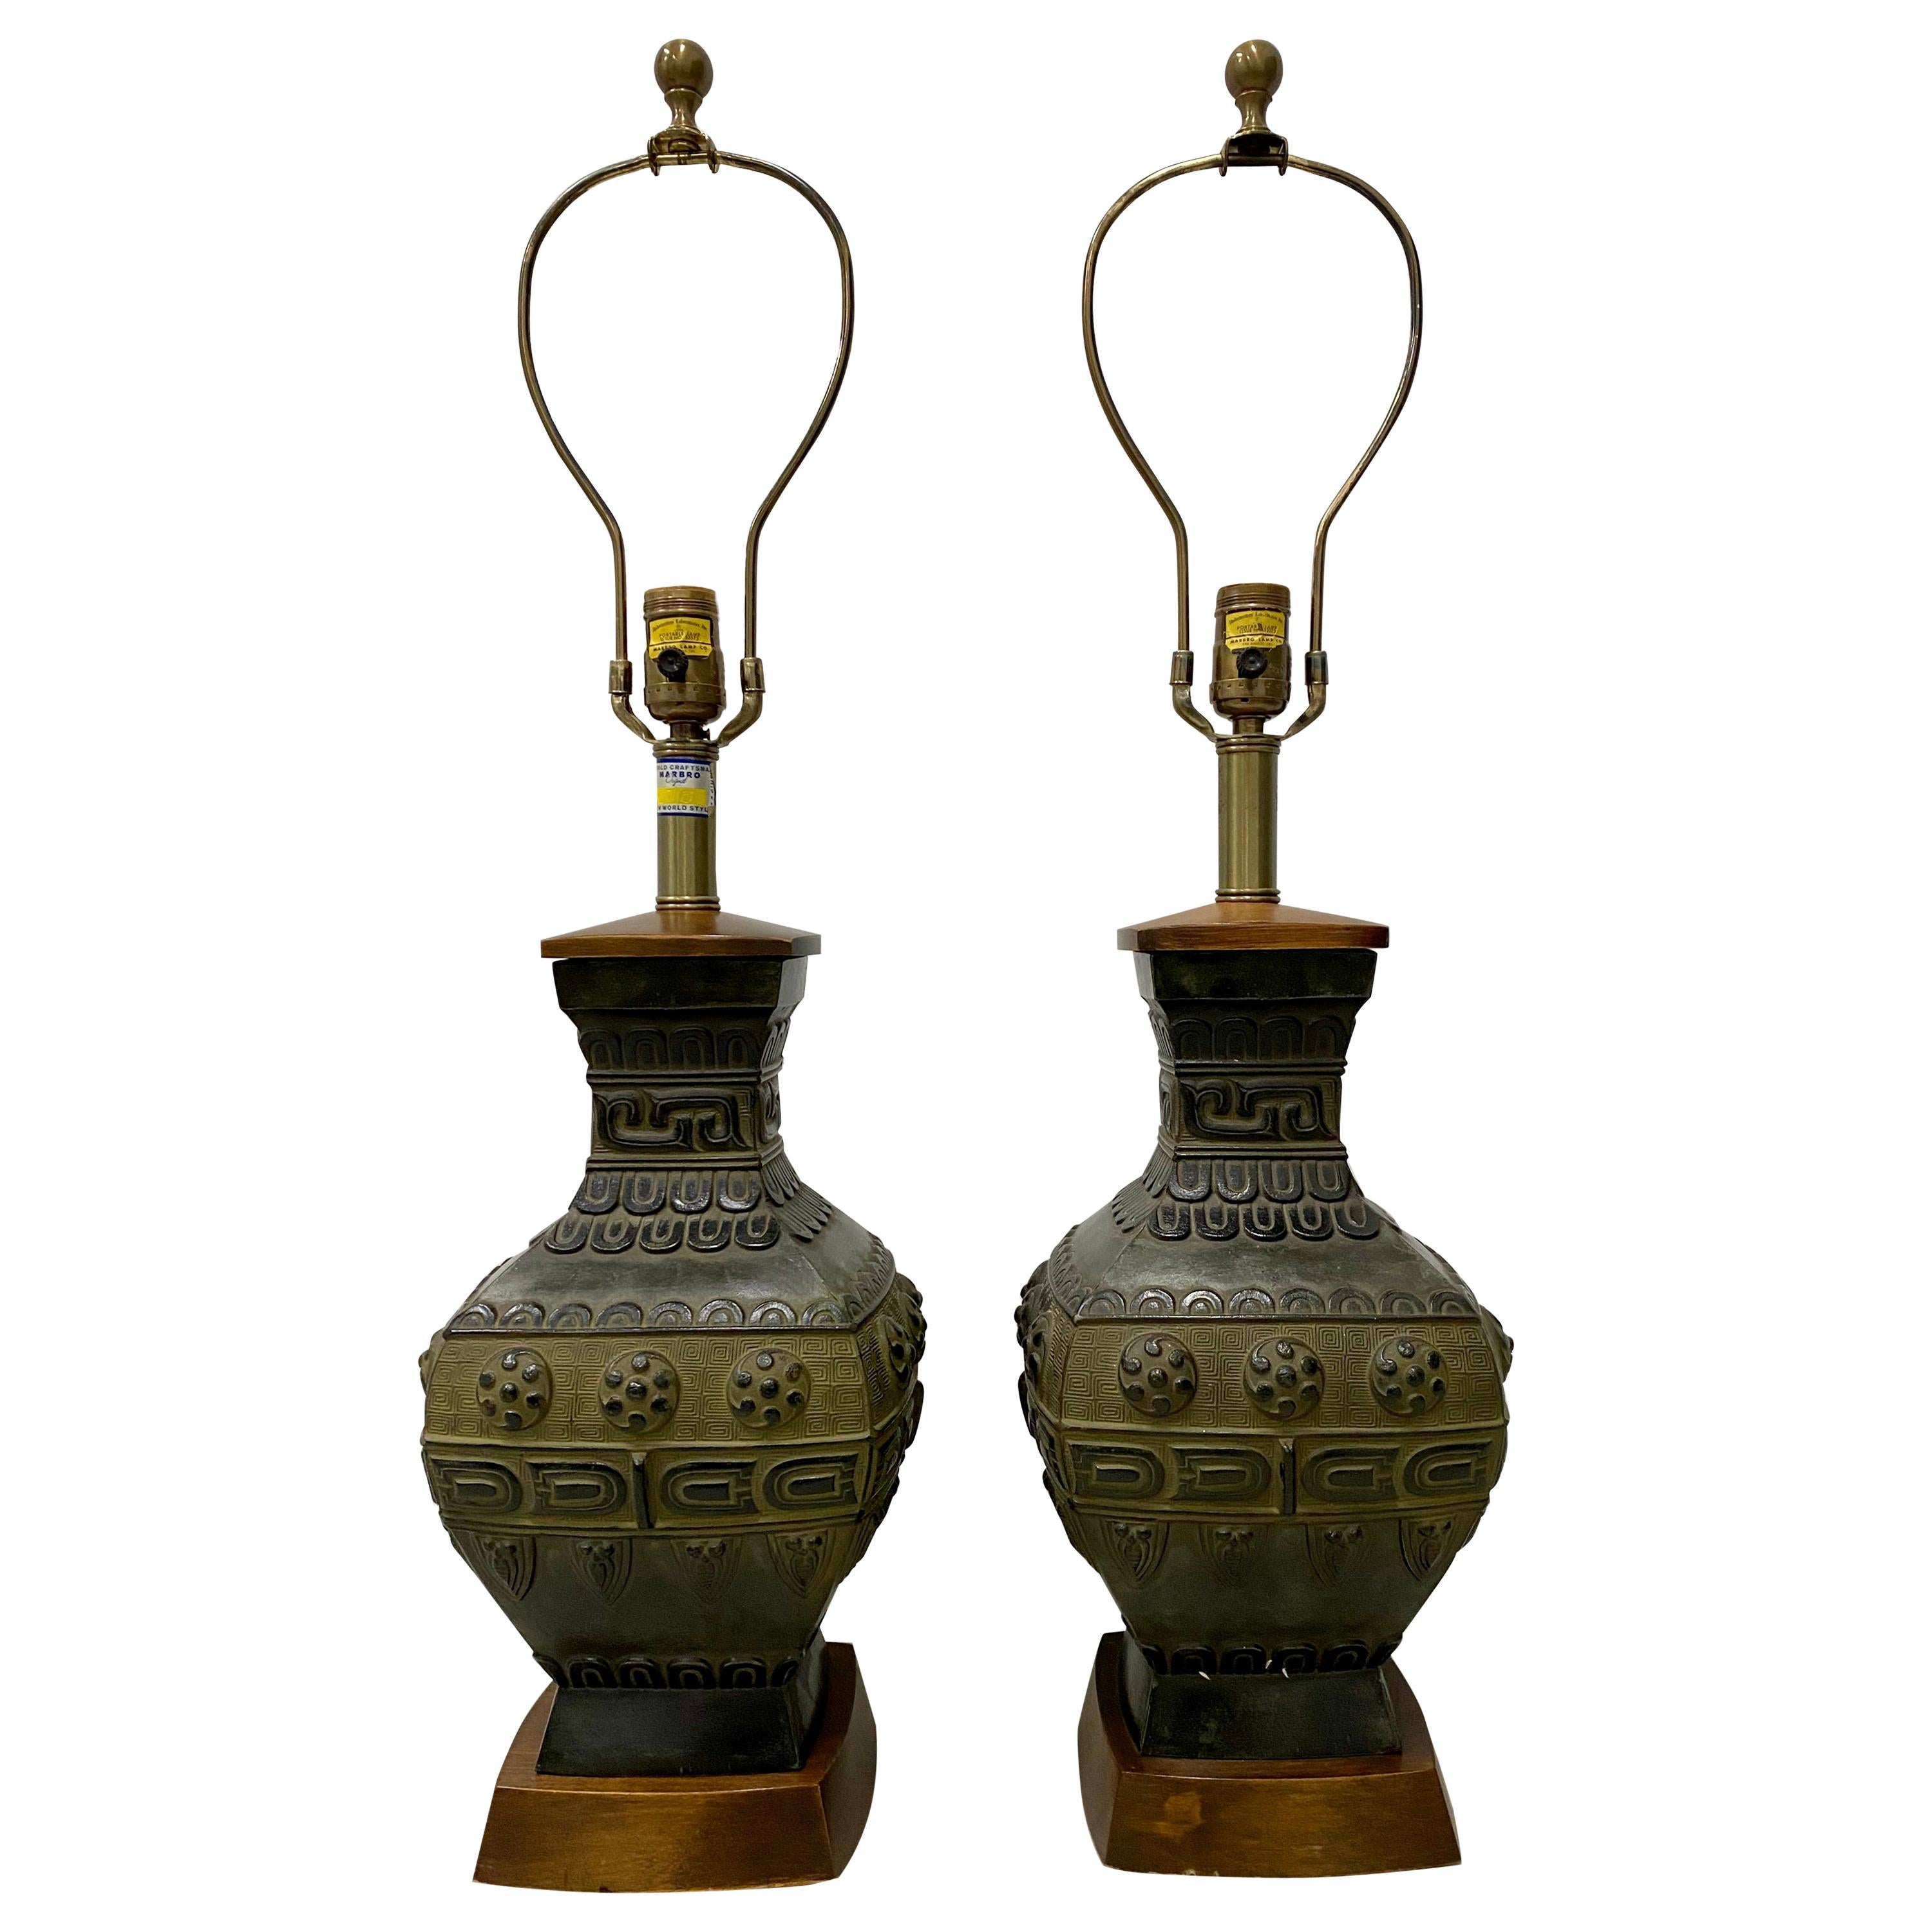 Pair of Midcentury Bronze Urn Lamps by Marbro, circa 1950